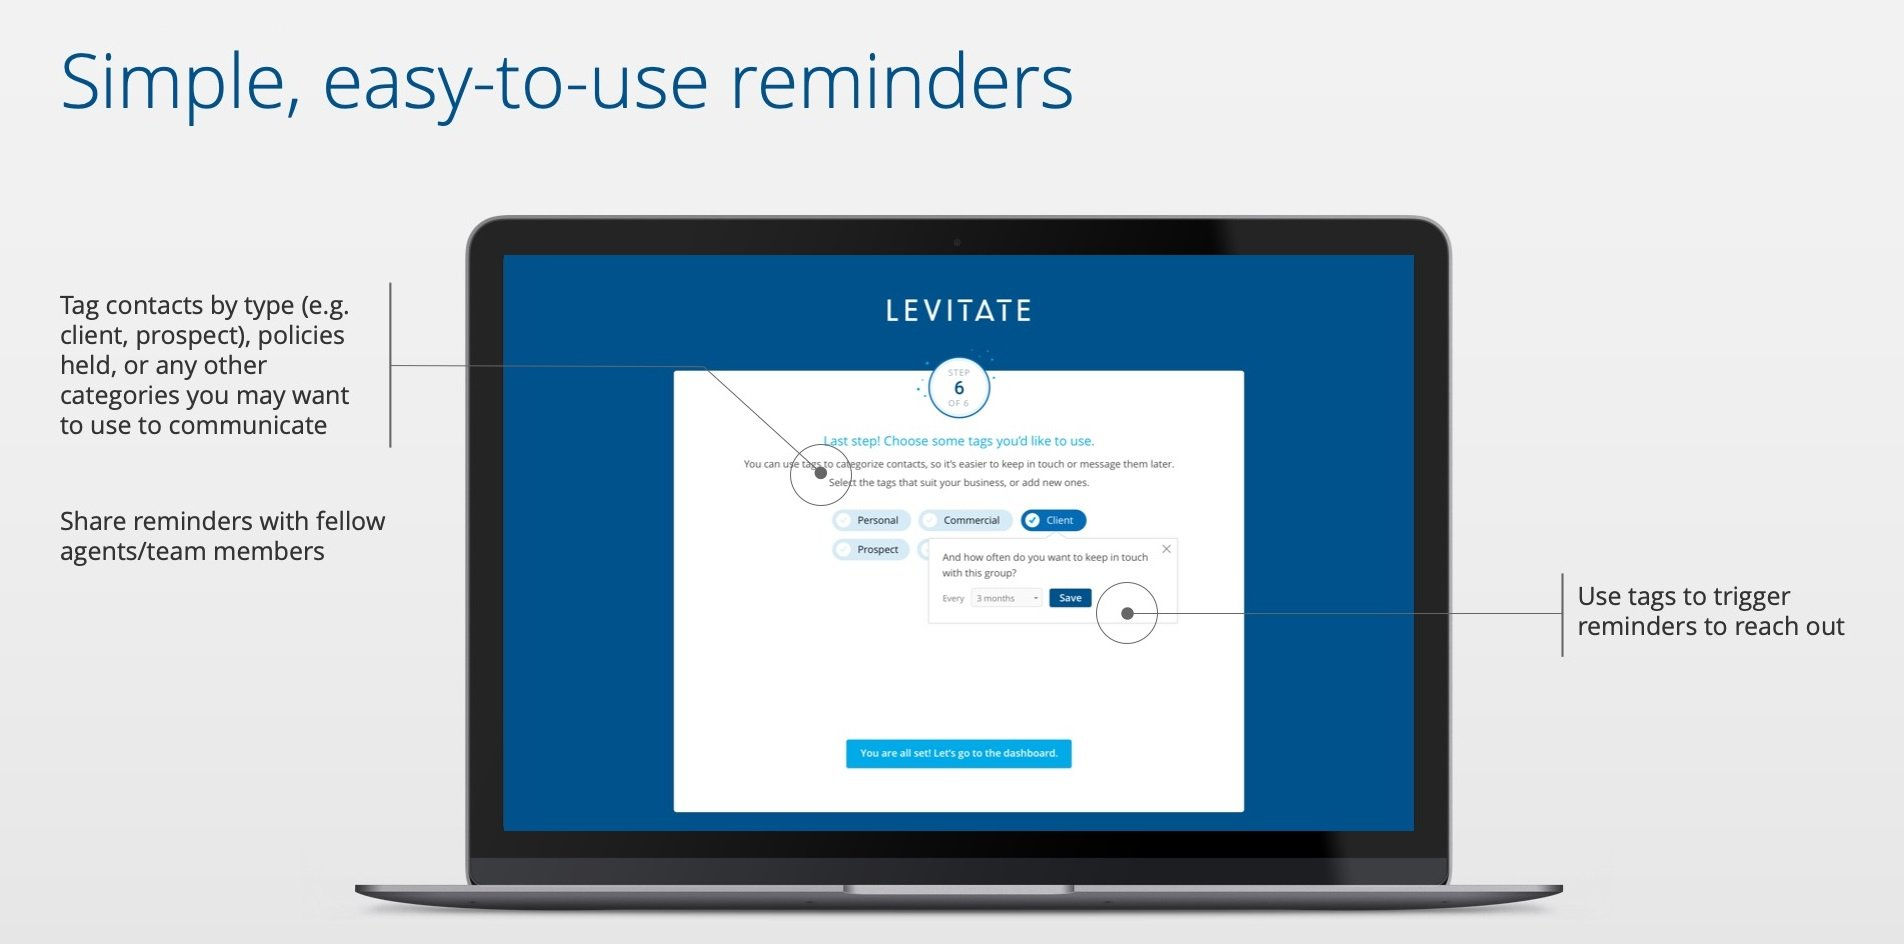 Contact reminders with Levitate